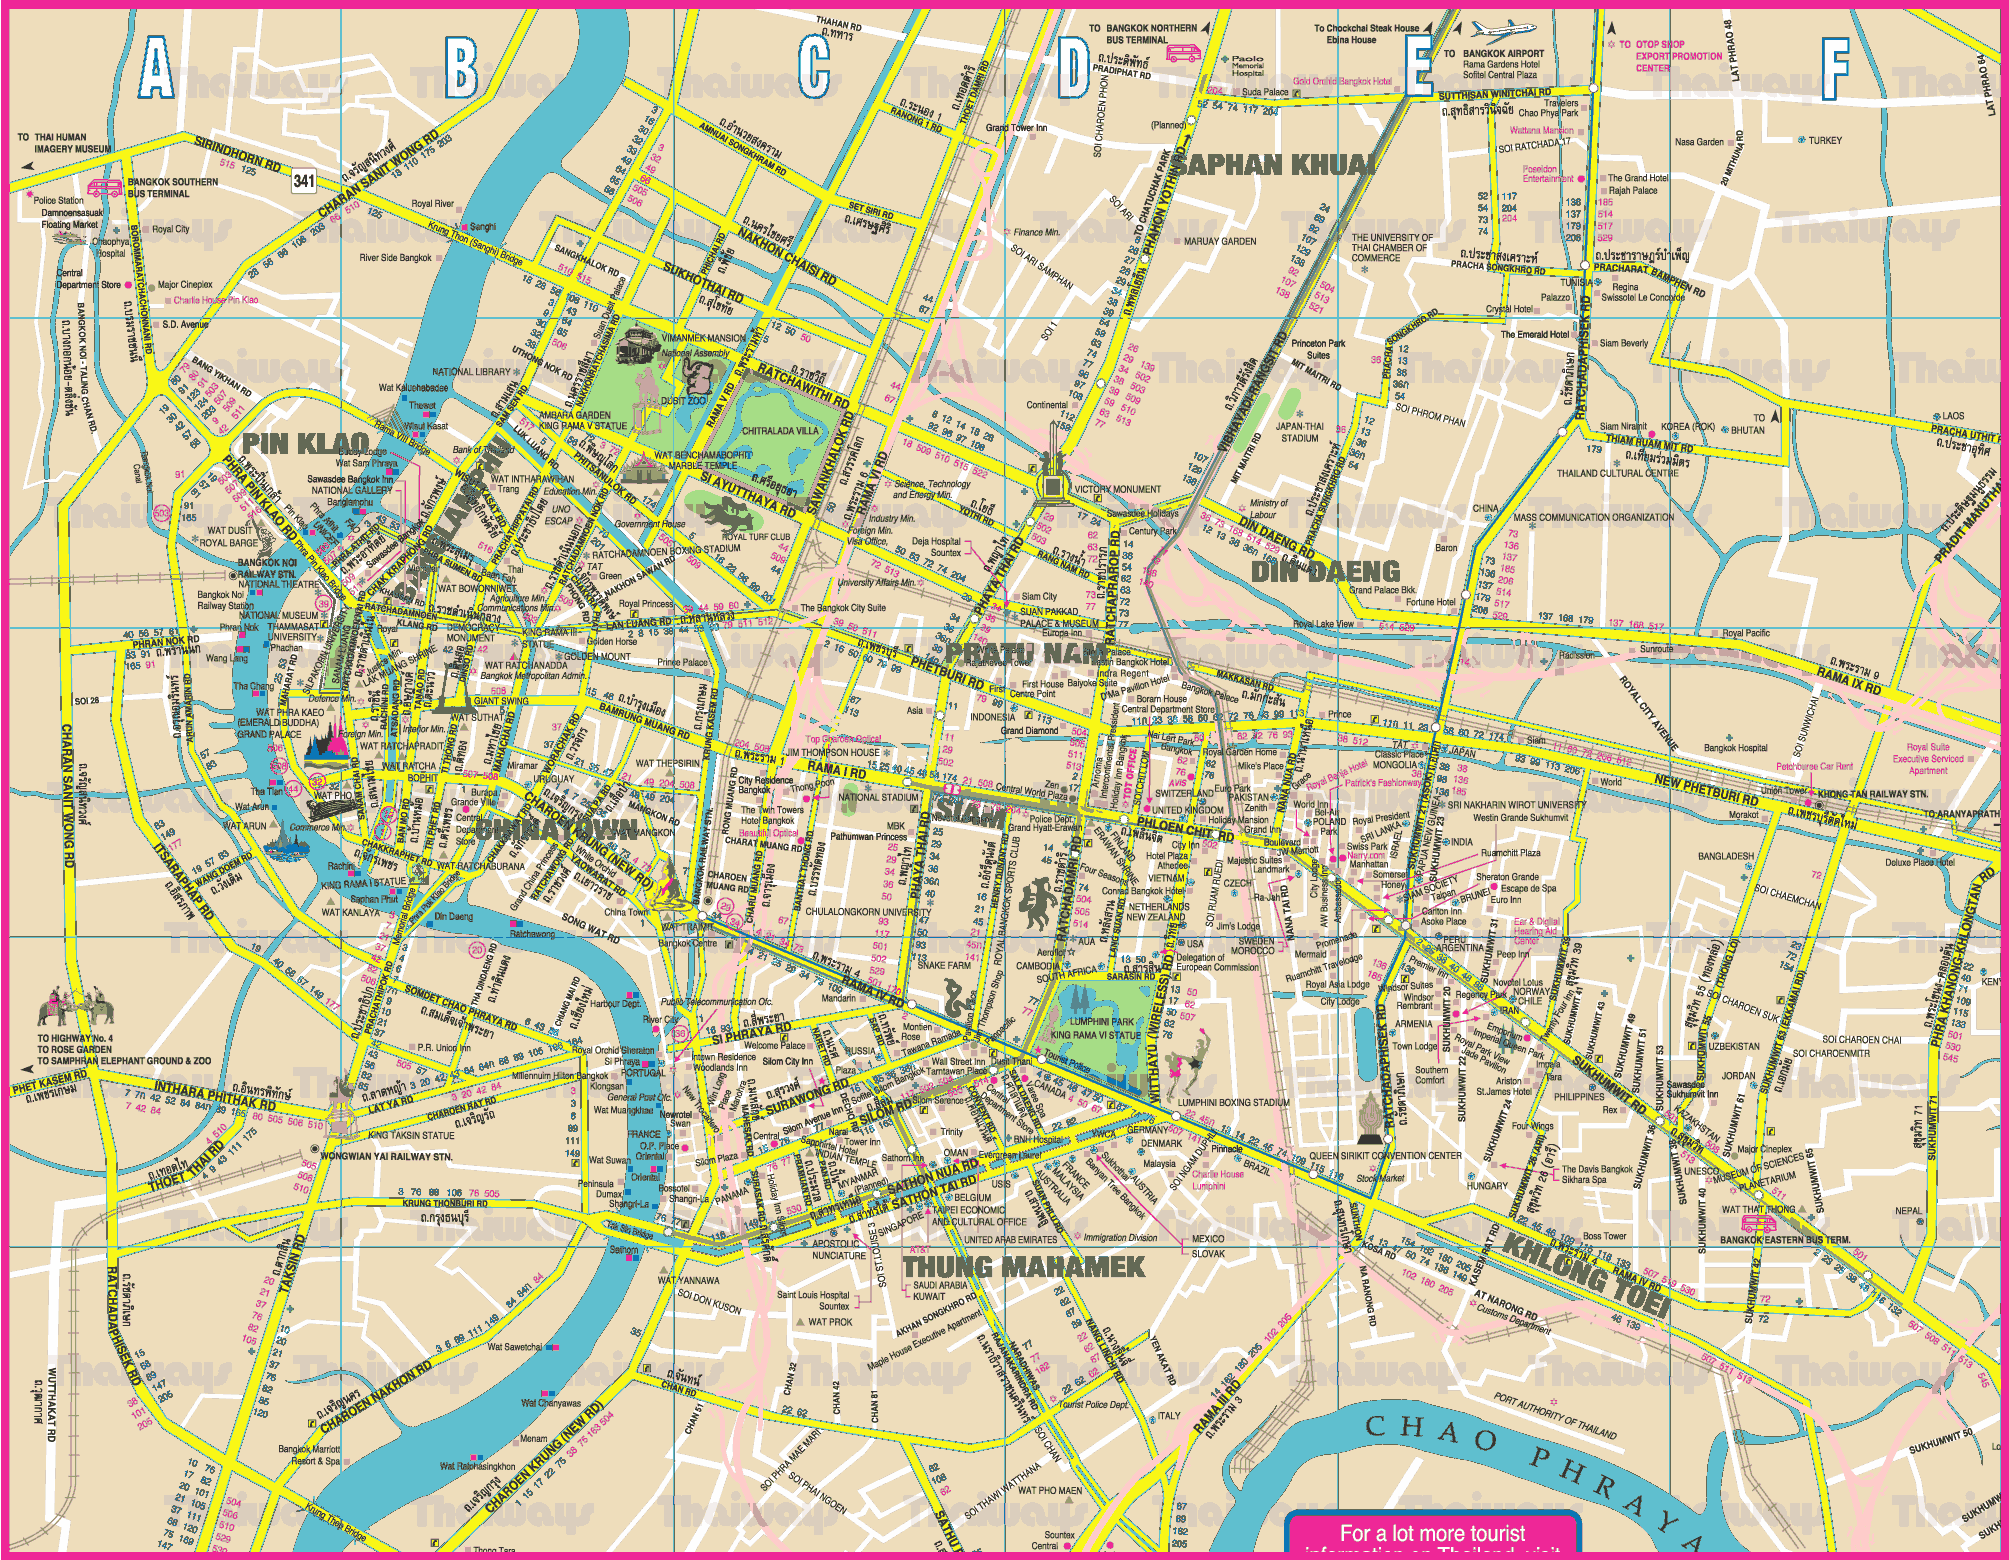 Bangkok Map - Detailed City and Metro Maps of Bangkok for Download ... Bangkok Map